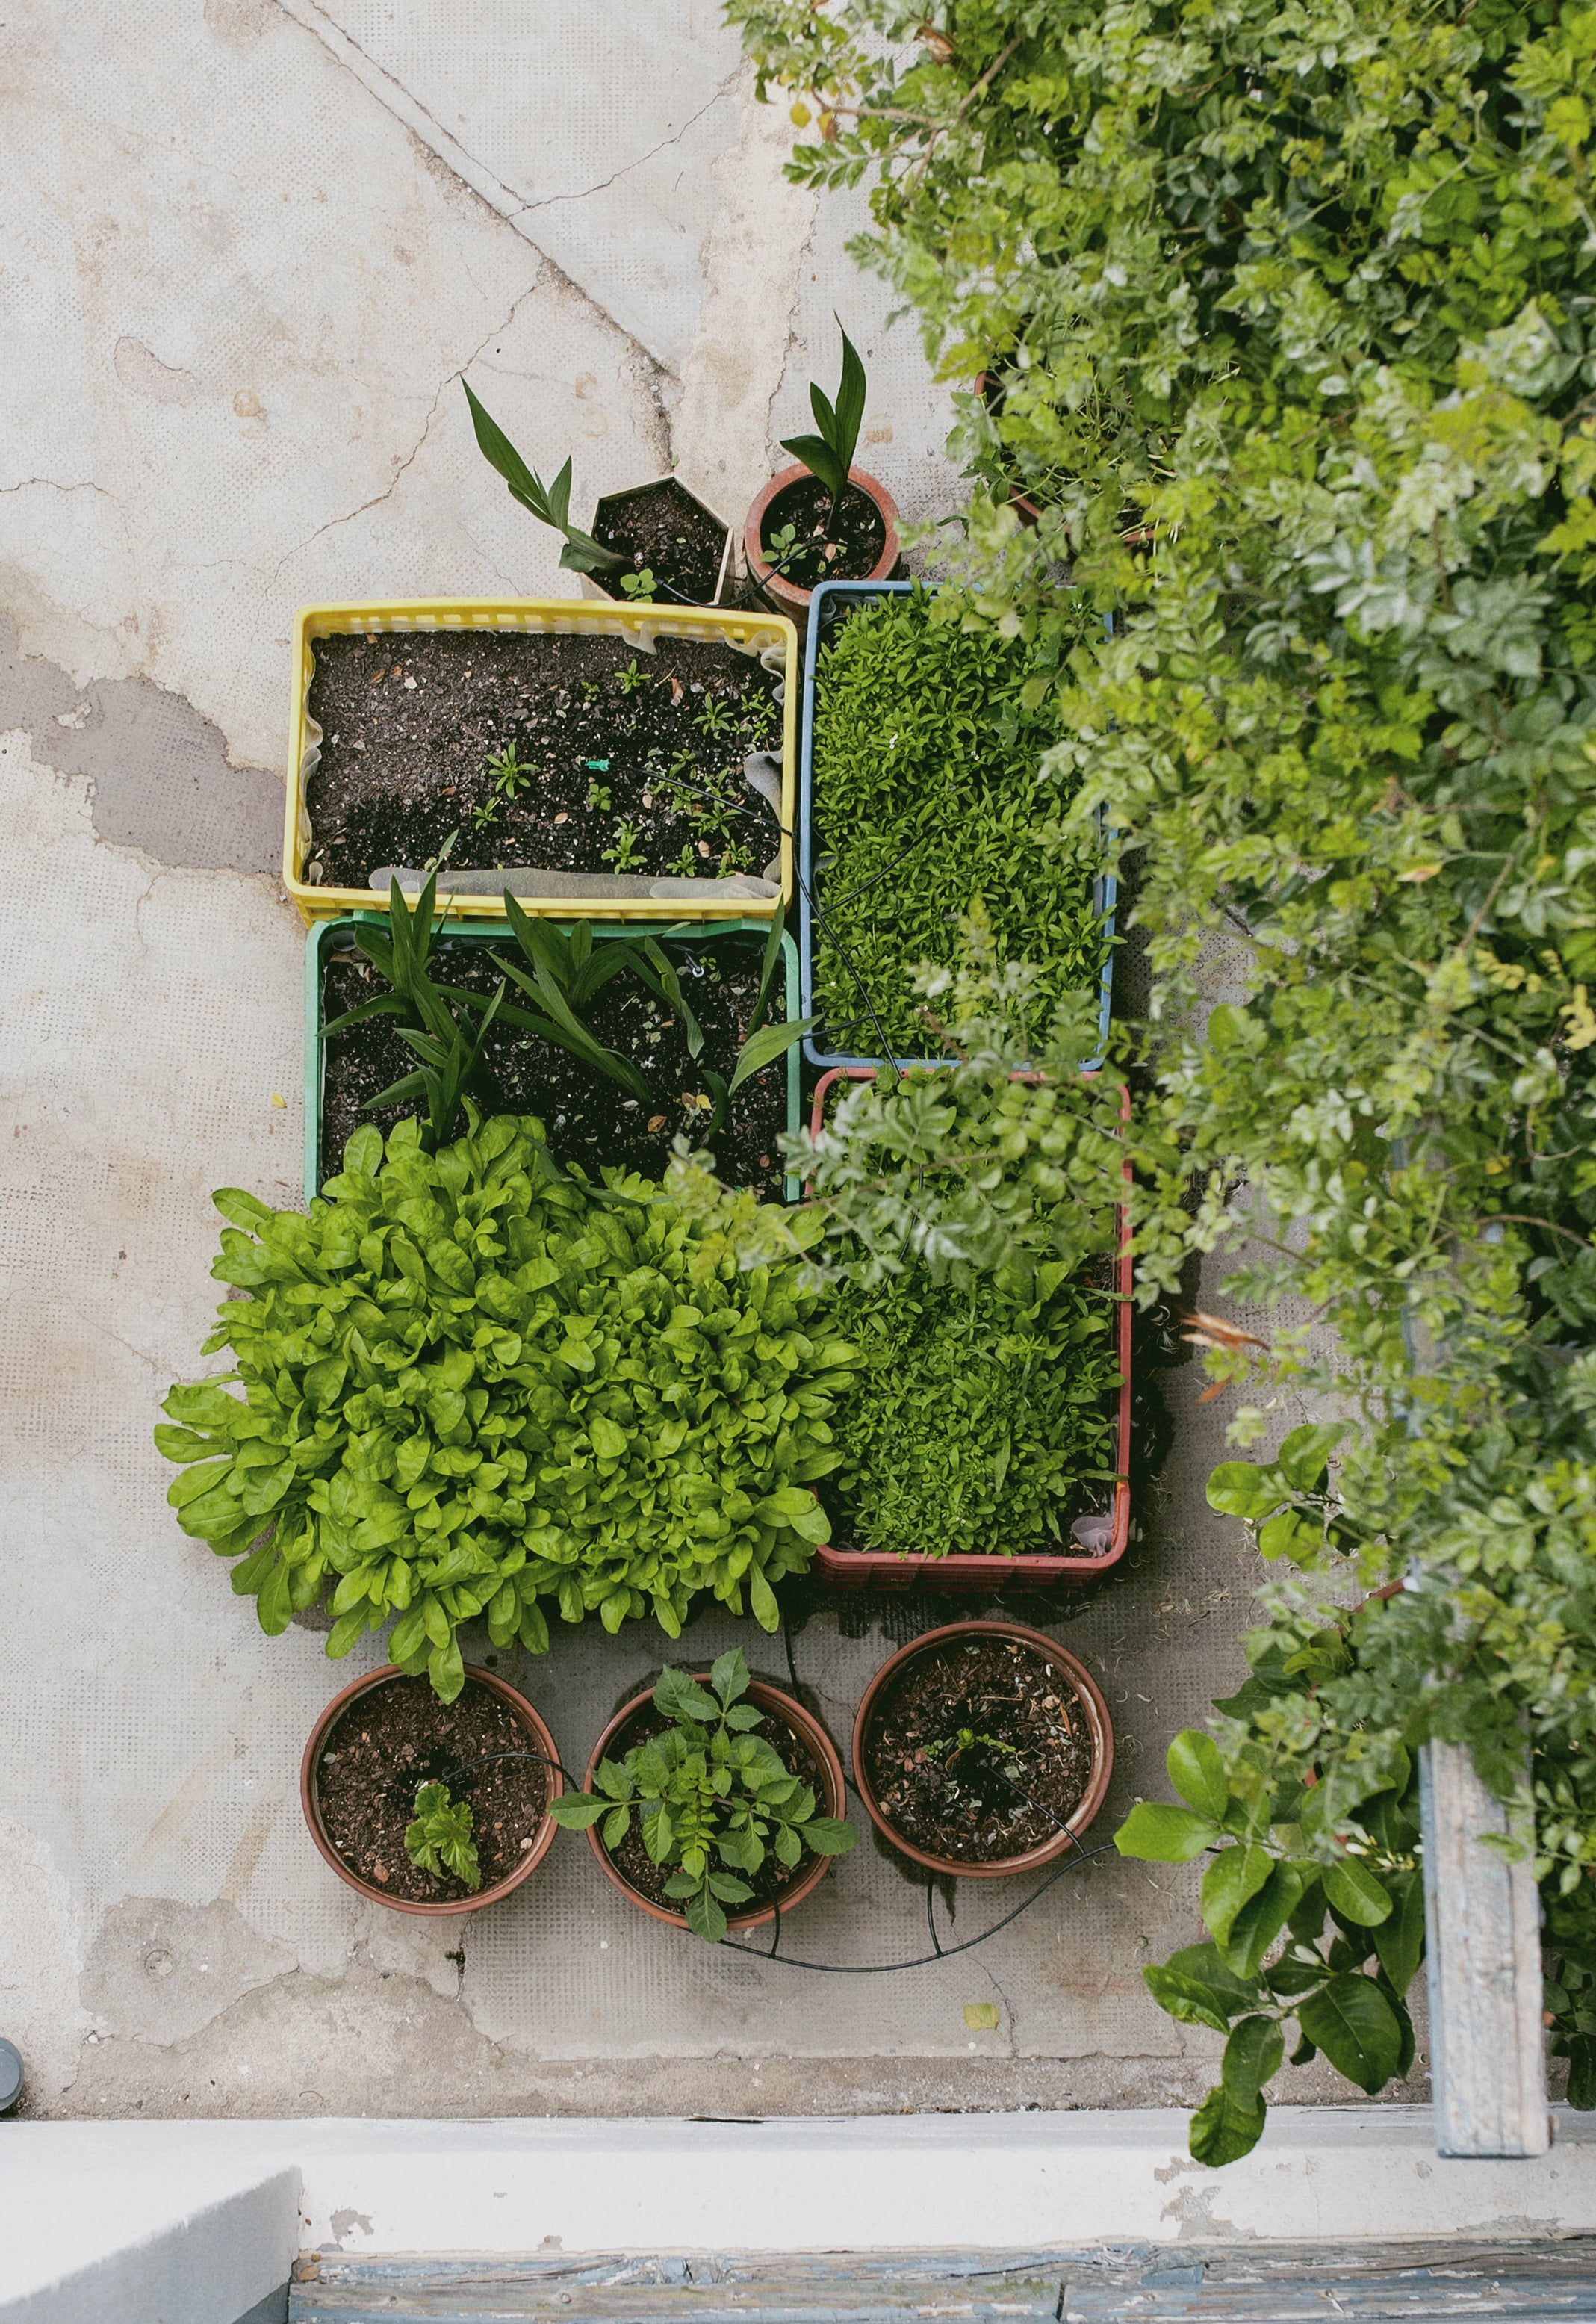 BOBO CHOSES TO MAKE A GARDEN LIVE